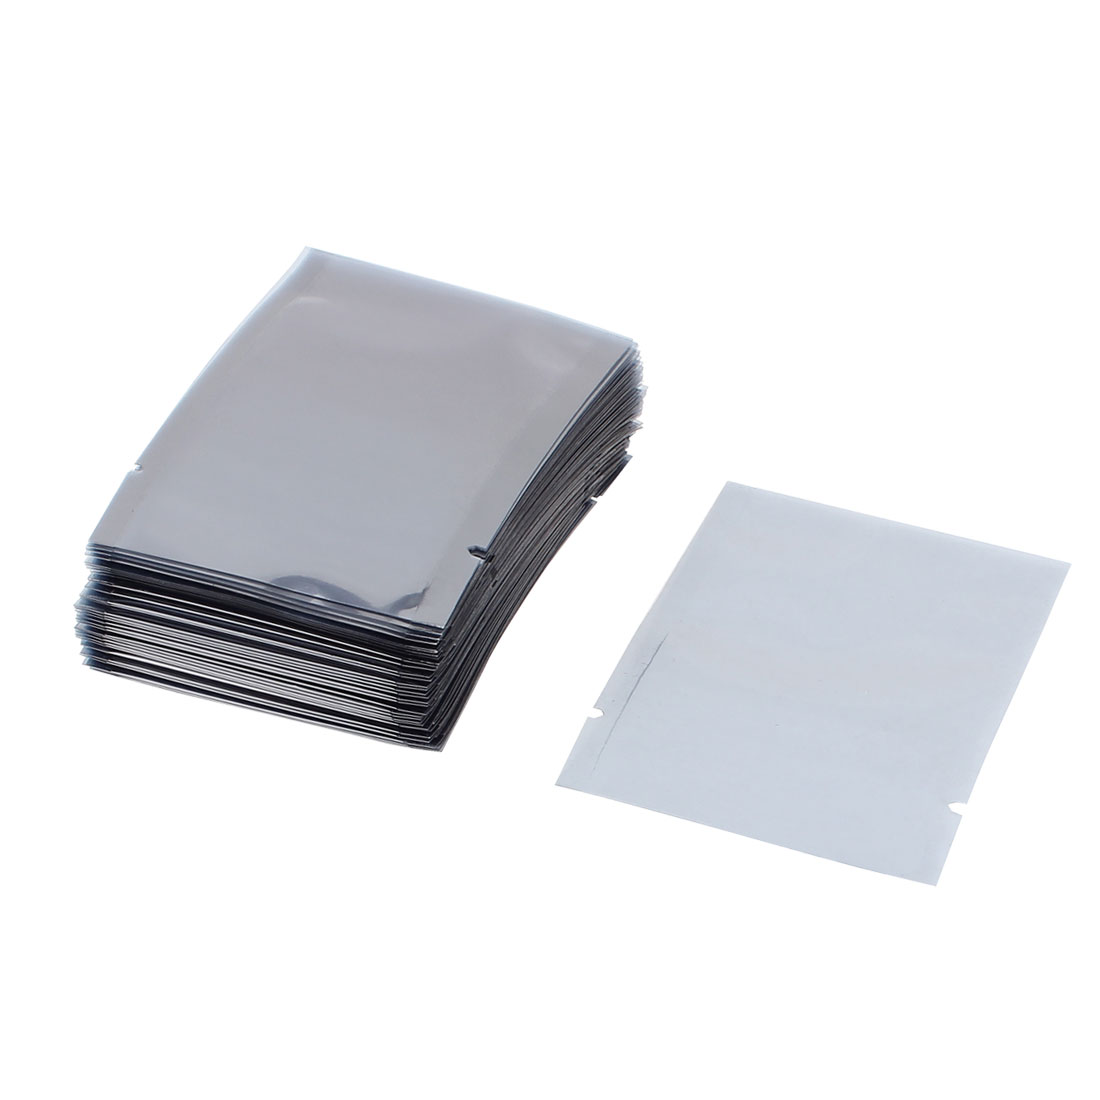 100 Pcs 60mm x 80mm Silver Tone Flat Open Top Anti Static Bag For Electronics